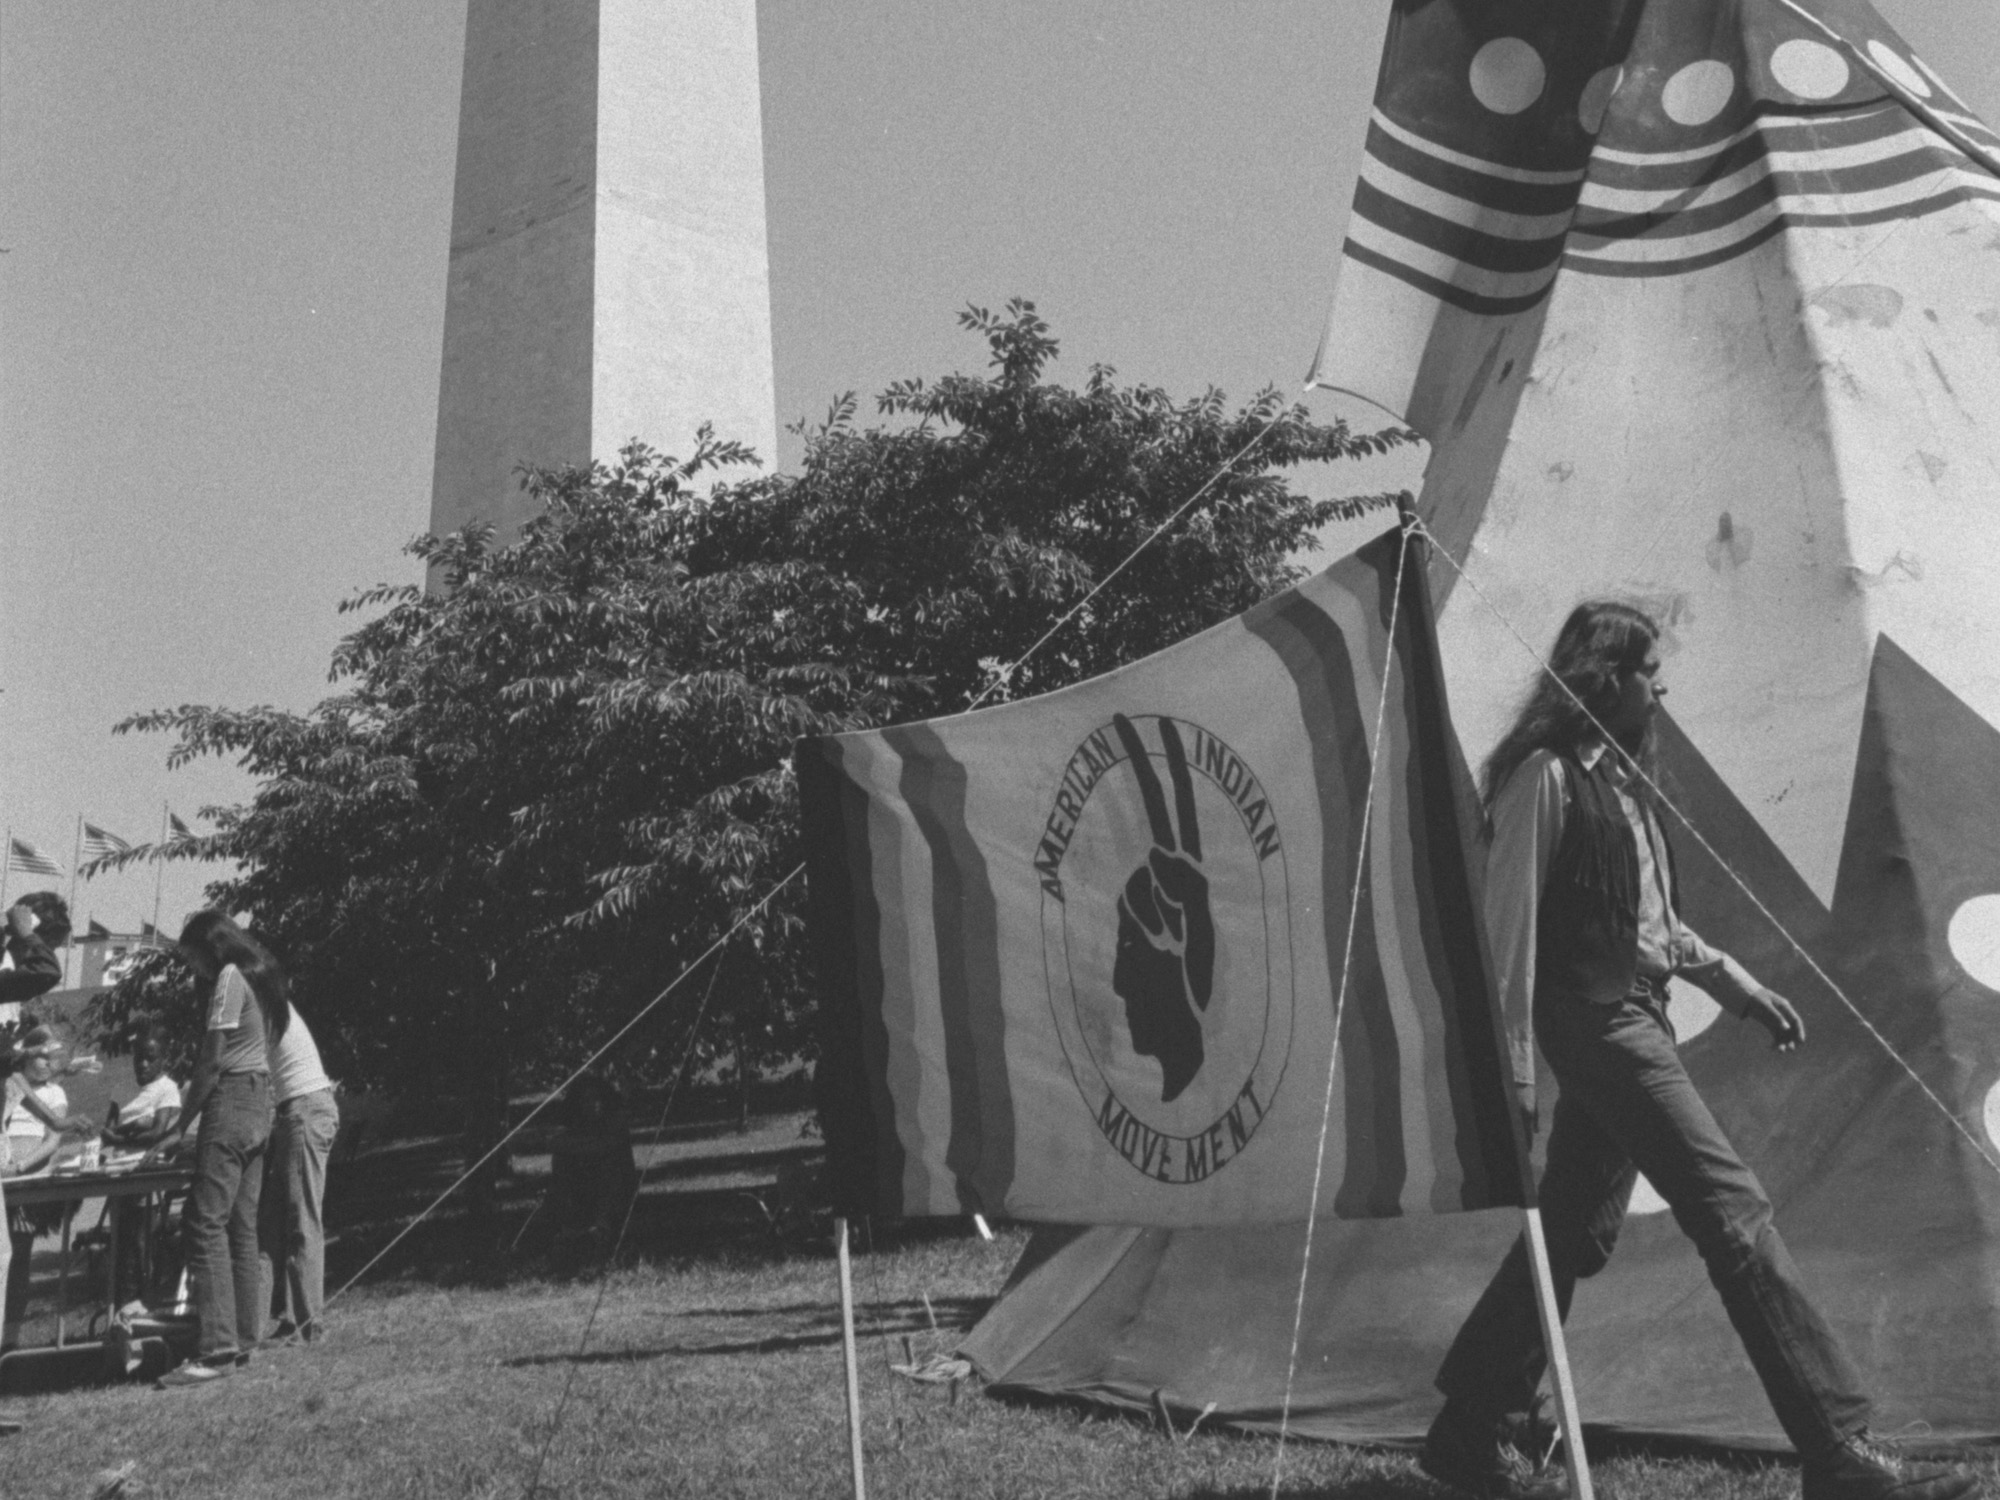 Tim Giago: Not everything about the American Indian Movement was positive